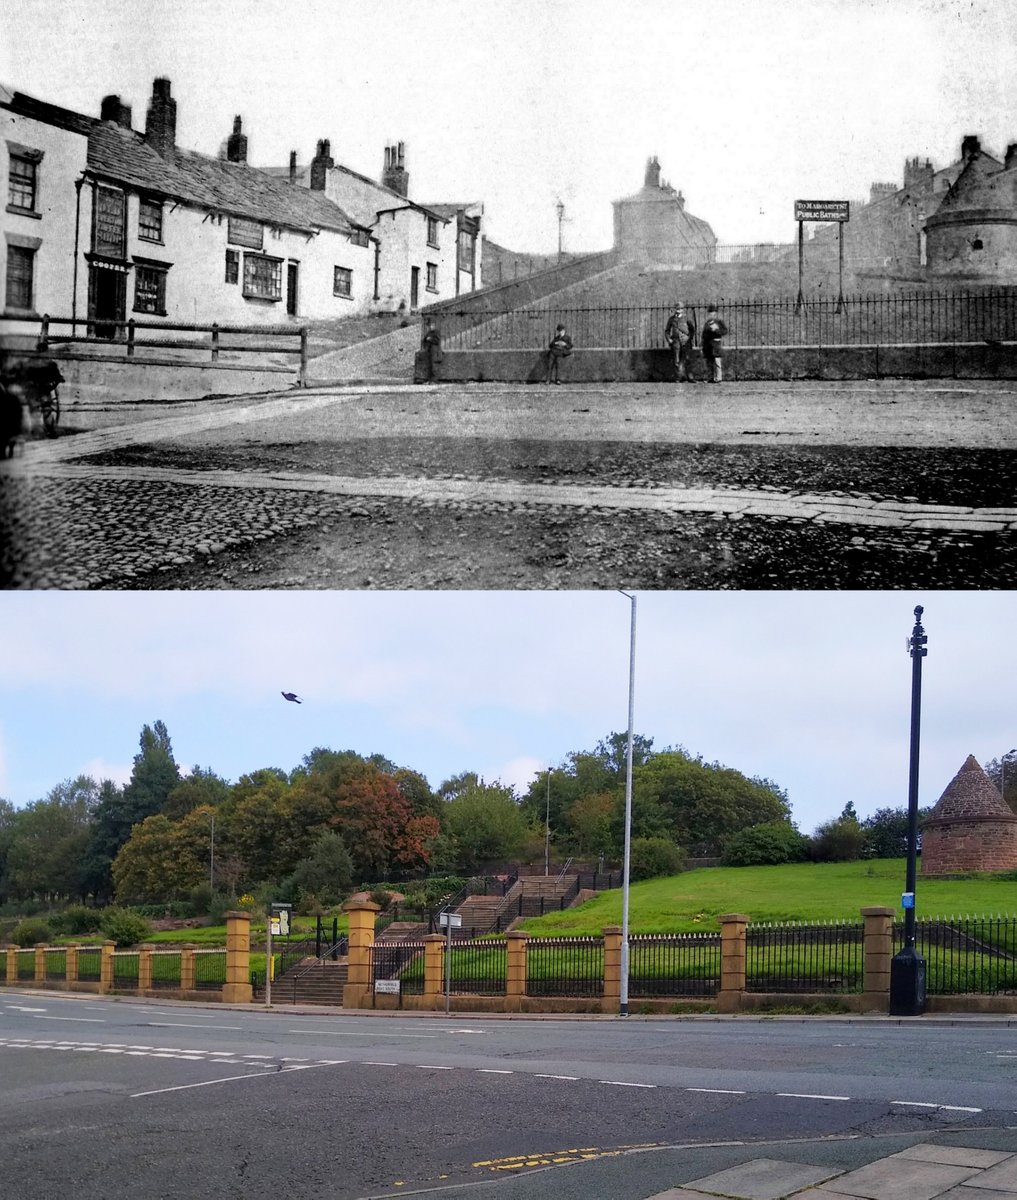 Liverpool Then And Now On Twitter Netherfield Road South Everton 1884 And 2020 With The 1787 Lock Up Featured On Everton S Badge On The Right Https T Co Wxta4v8hah And The Toffee Shop Which I Think